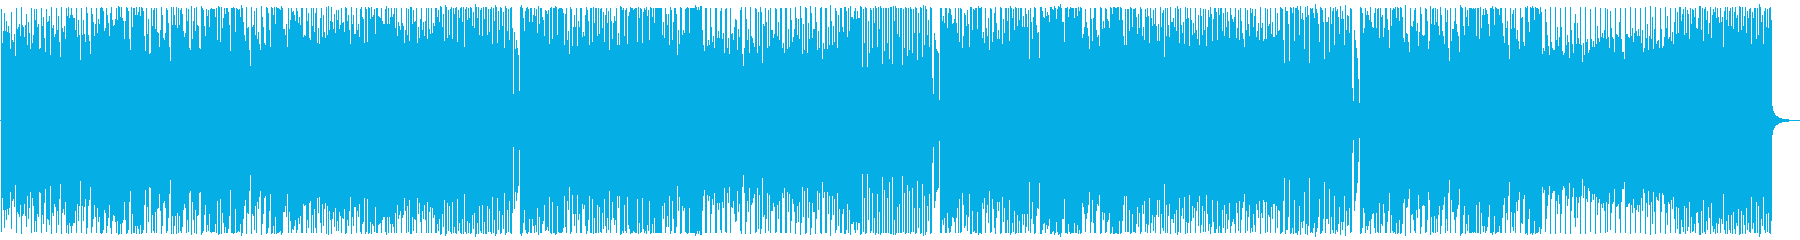 A bright, rhythmical, a little comical song's reproduced waveform